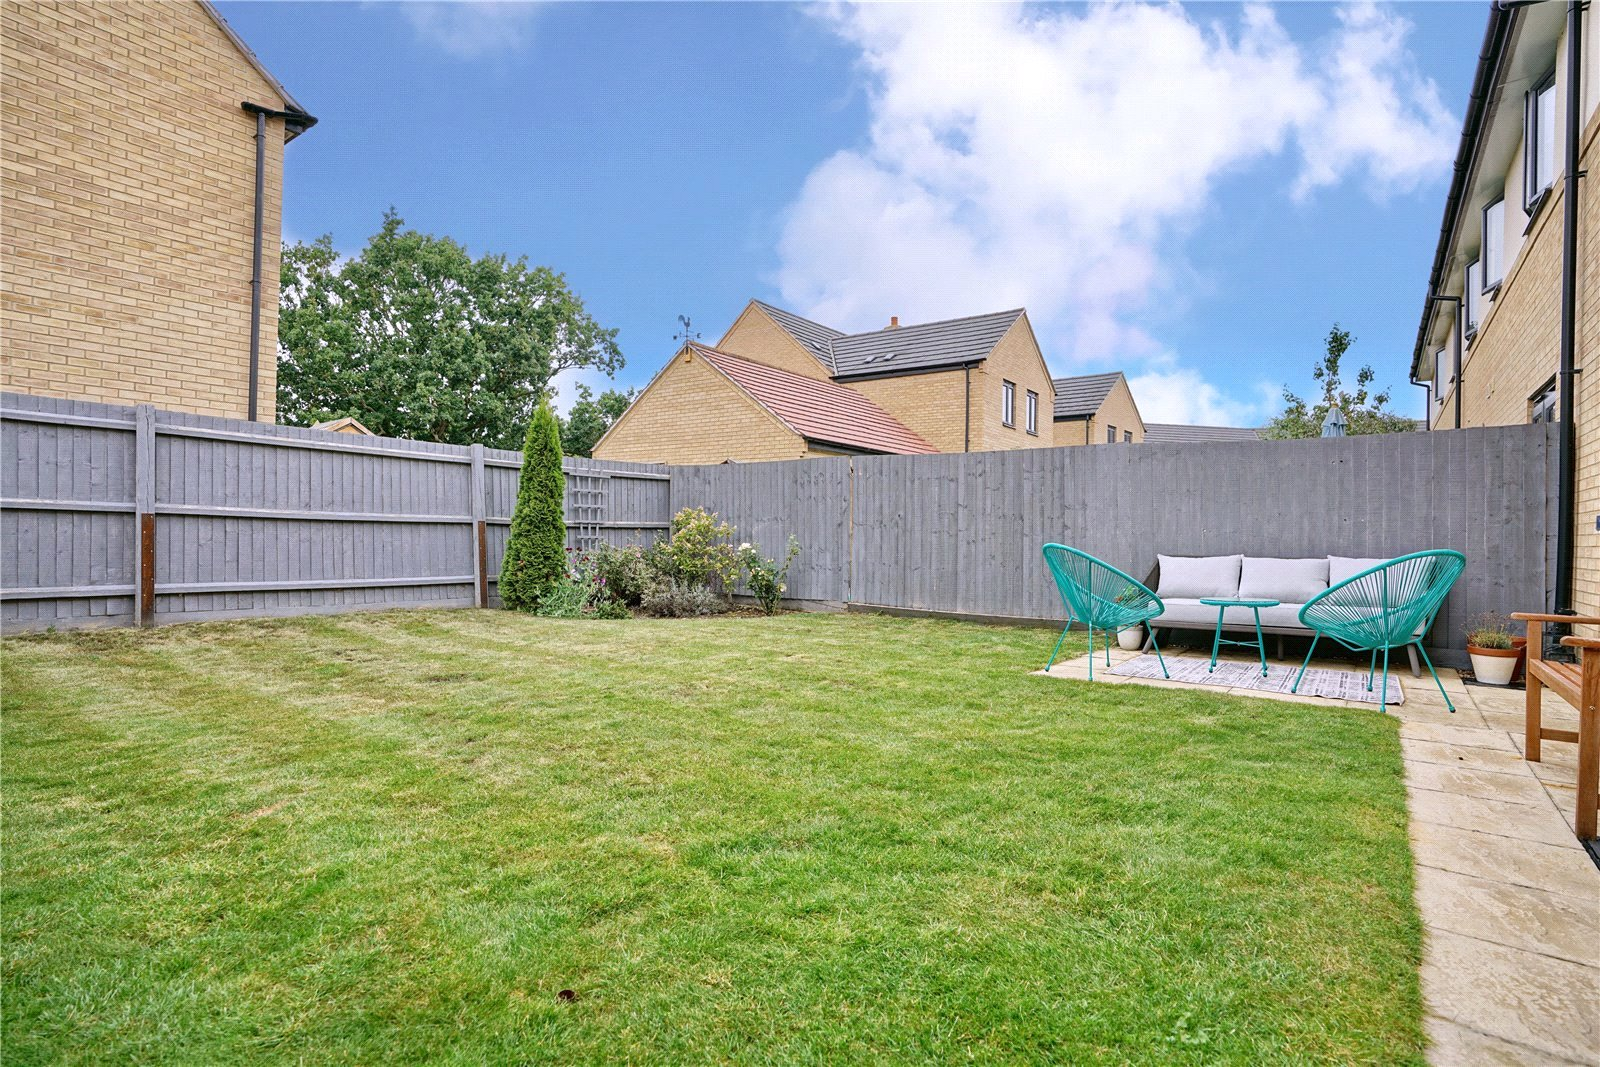 3 bed house for sale in St. Ives, PE27 5DL 3